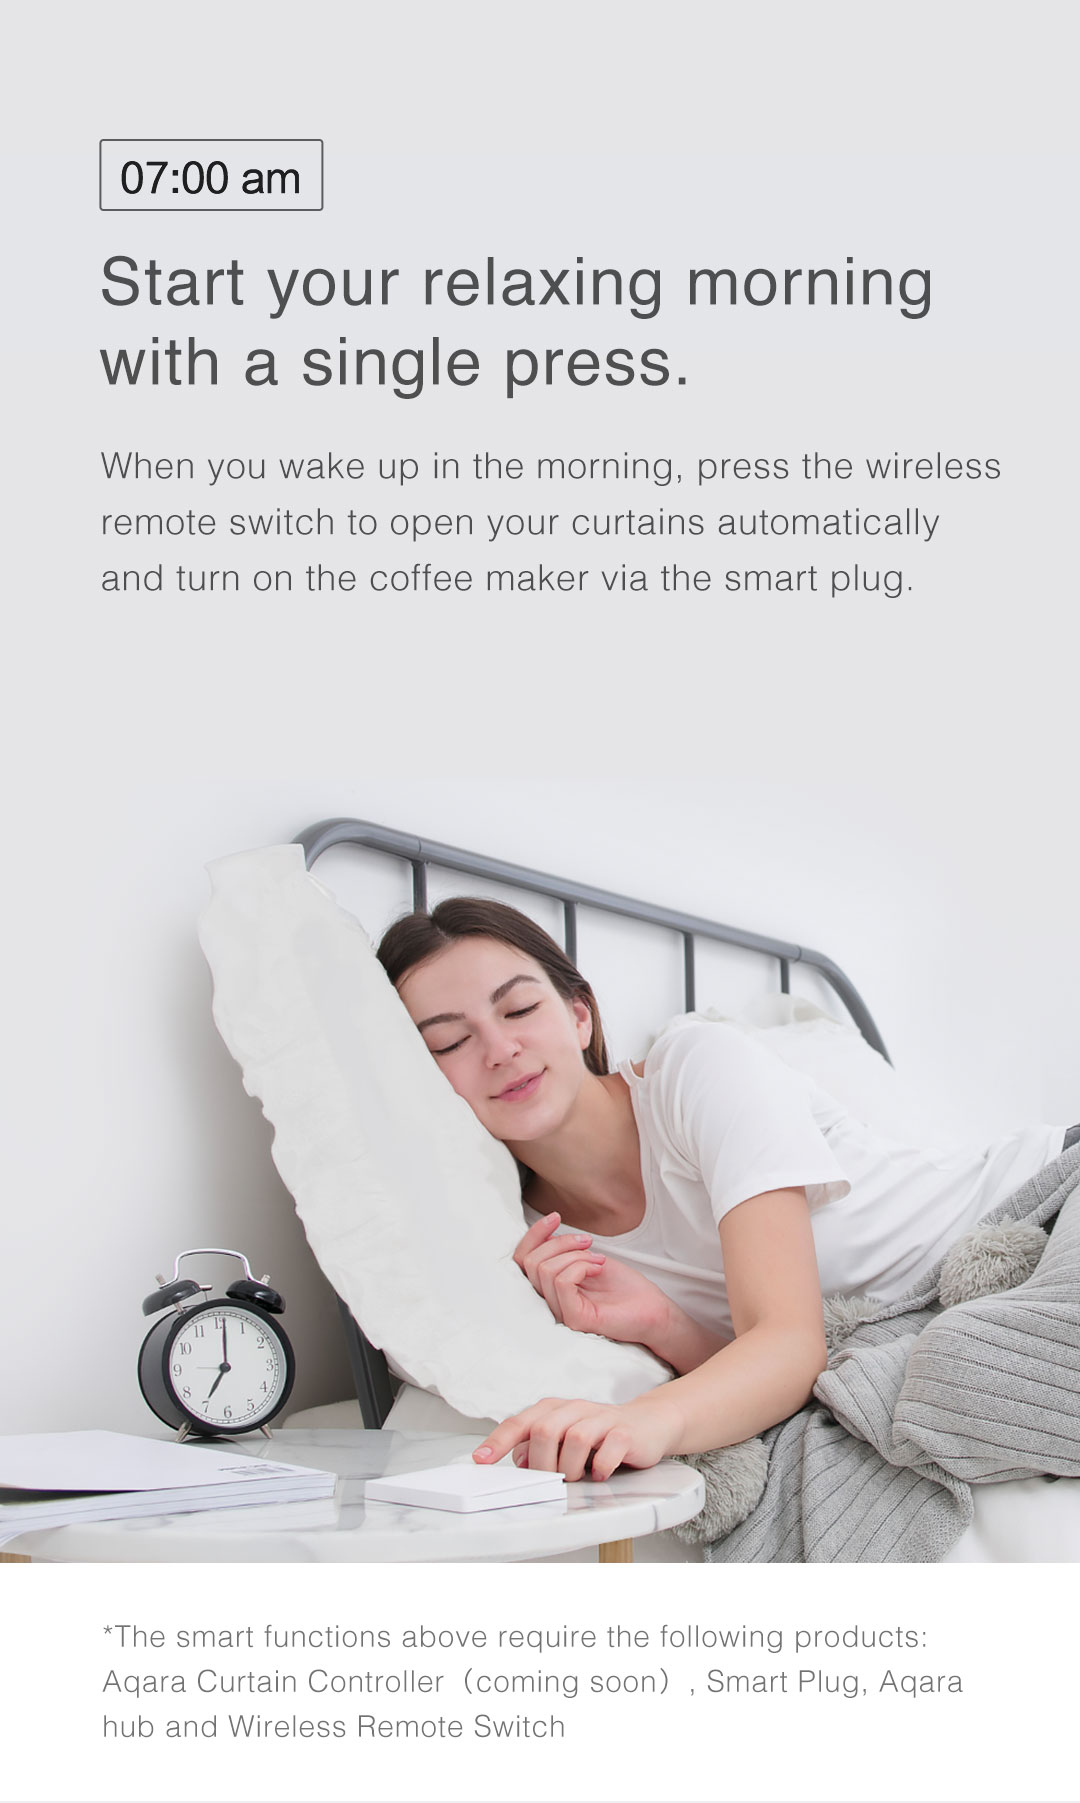 Press our wireless light switch to start your relaxing morning